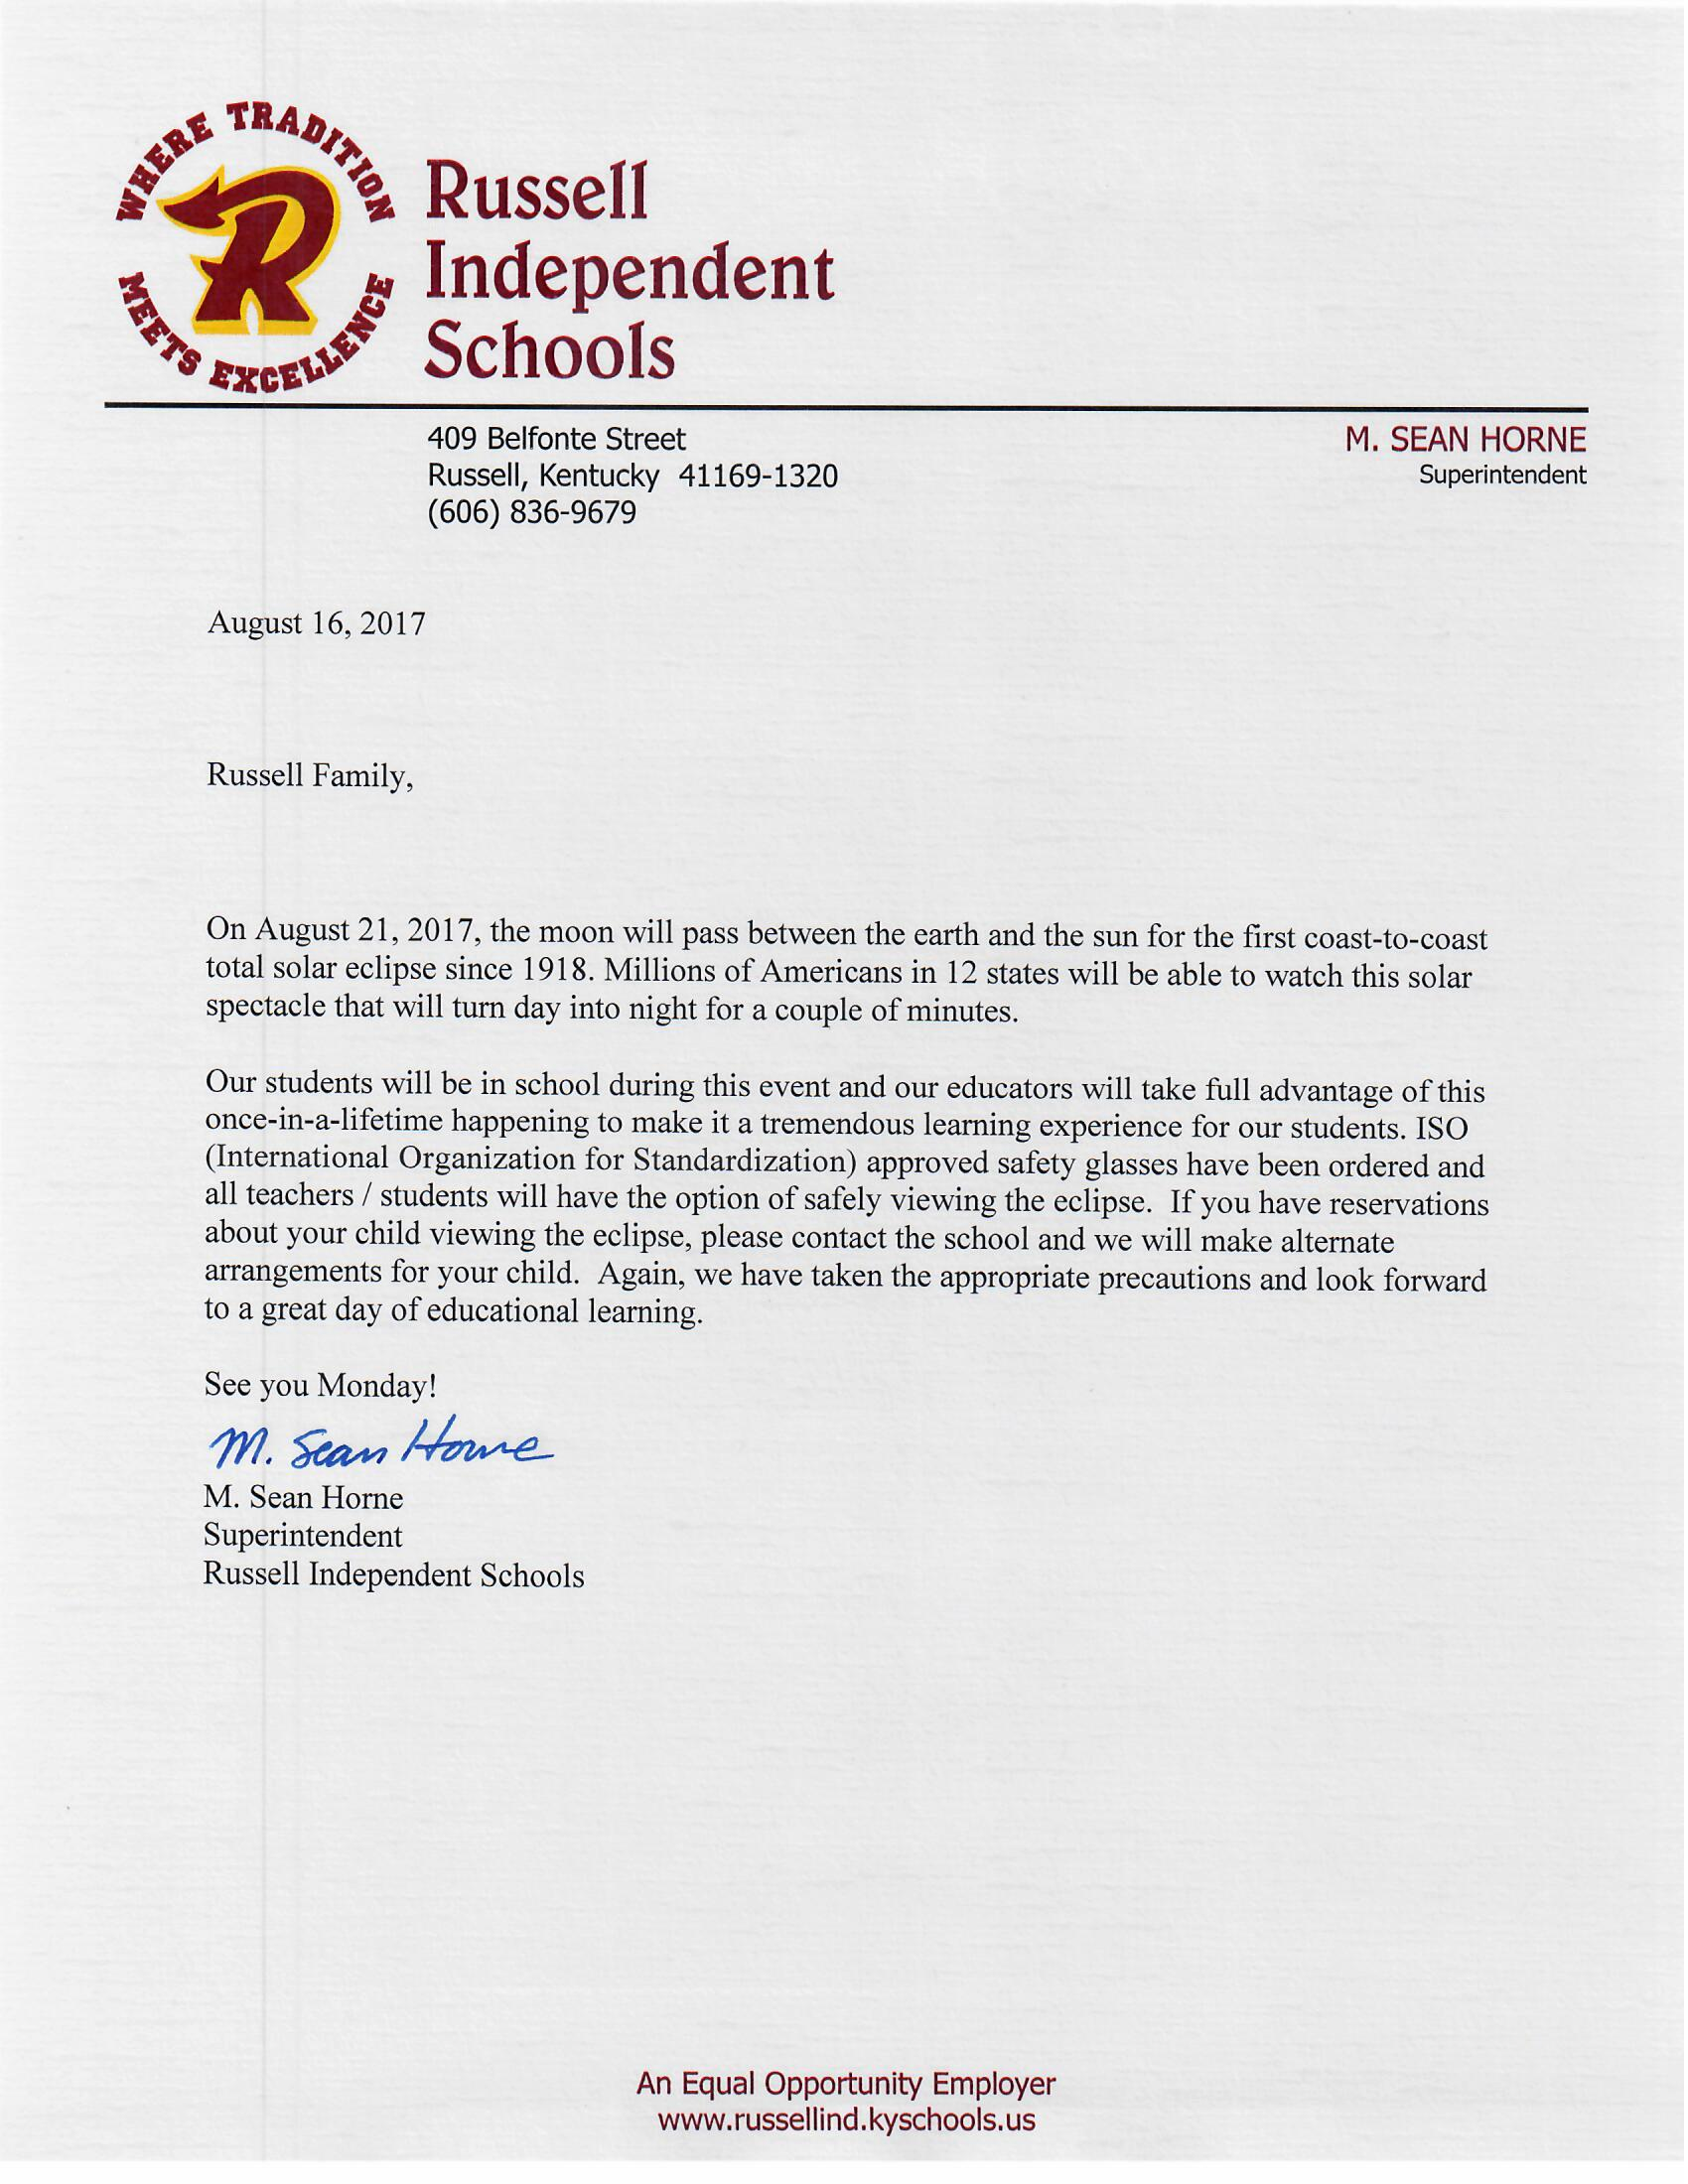 superintendent letter about solor eclipse